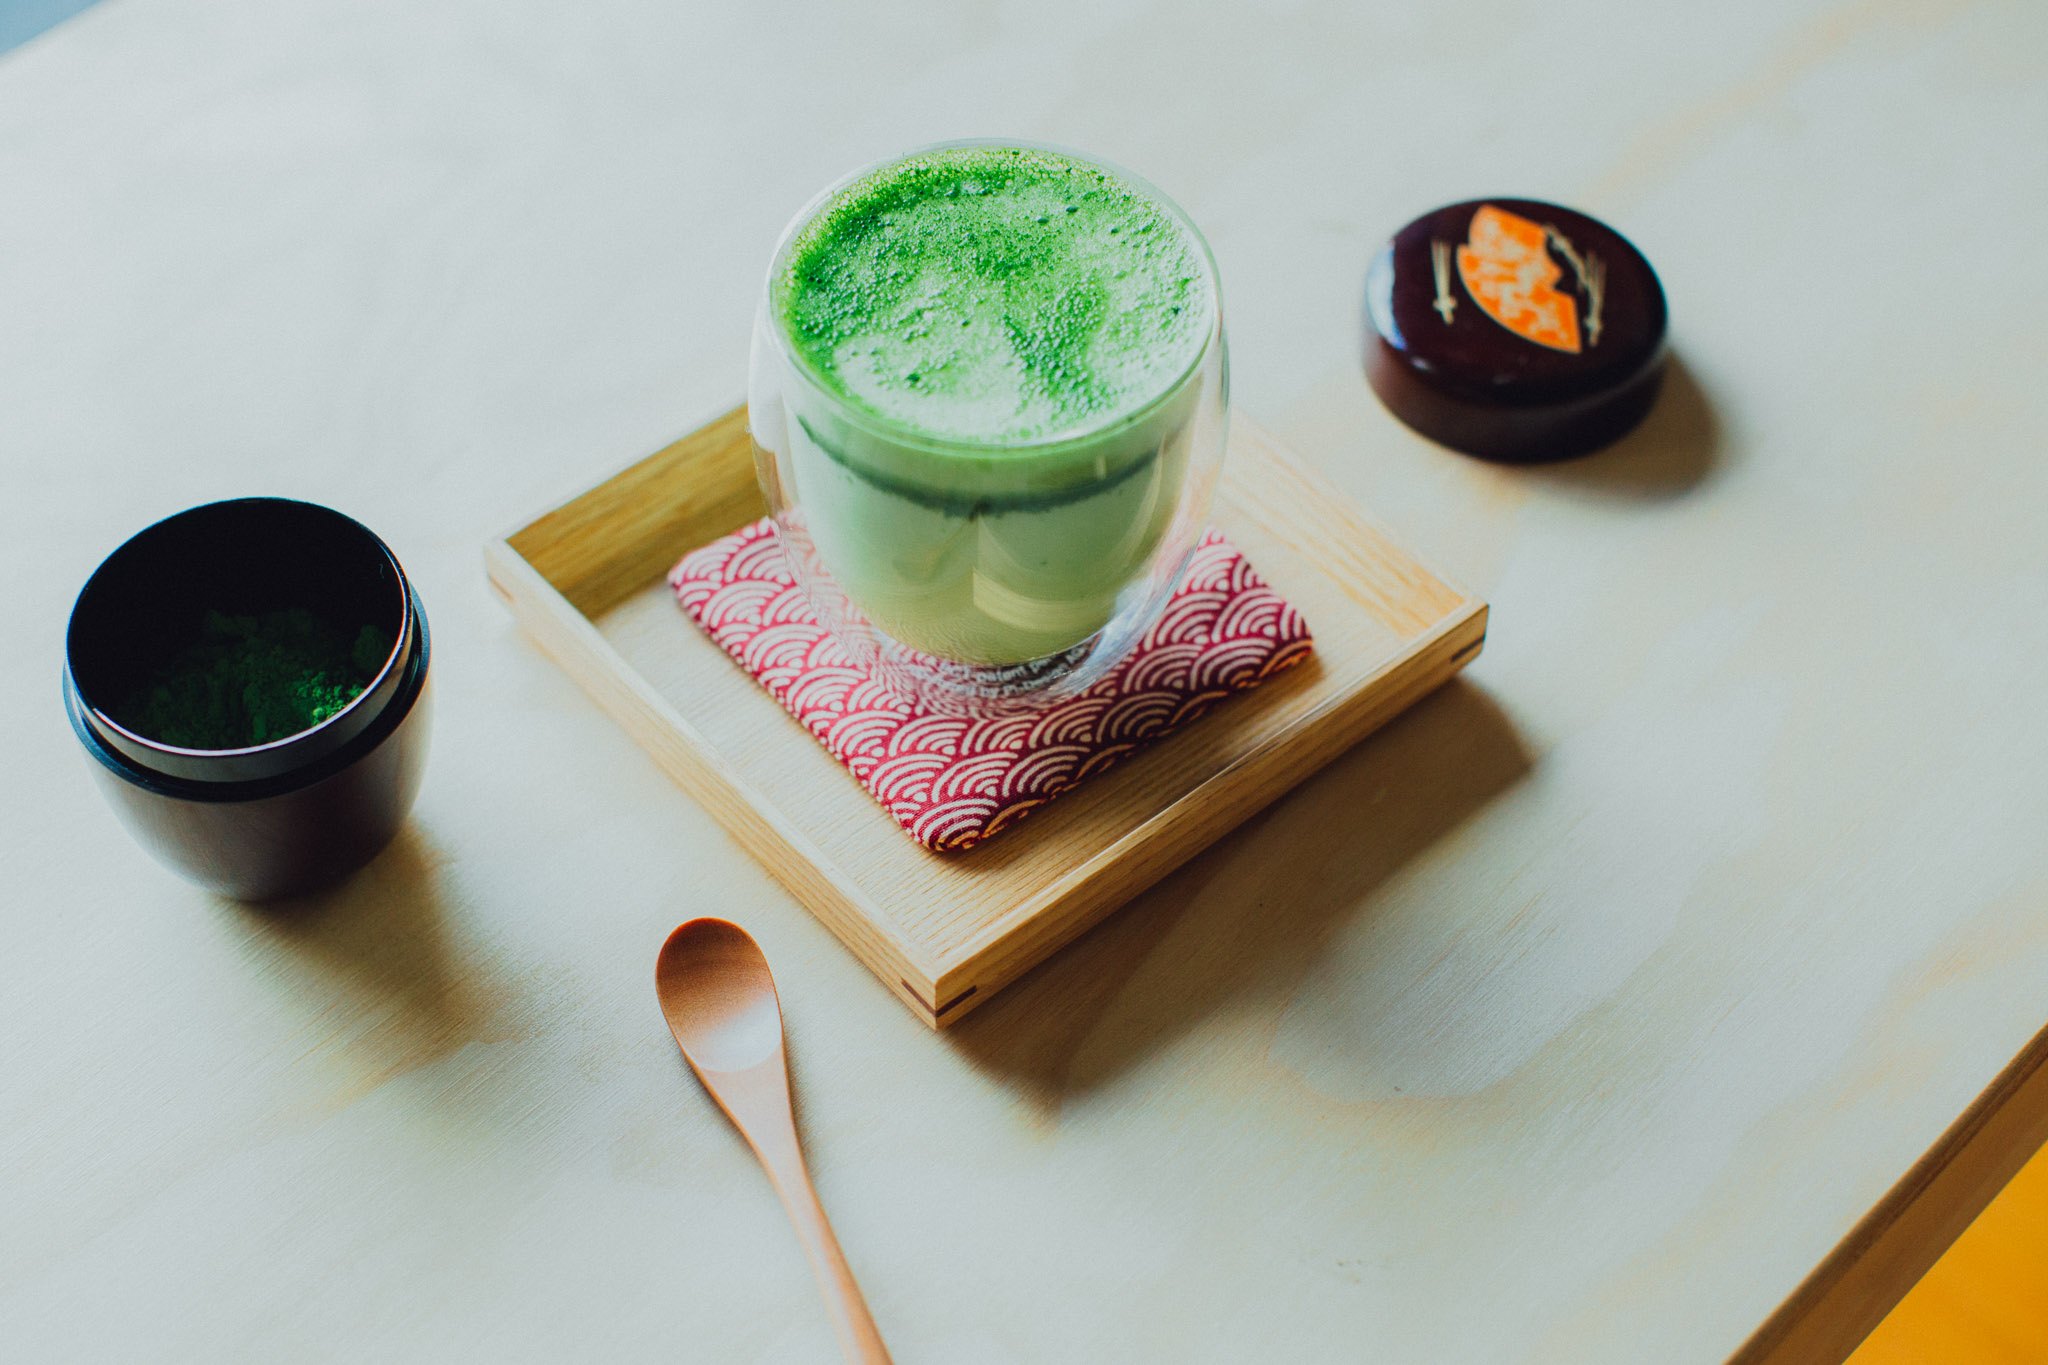 chotto-melbourne-food-photography-green-tea-latte